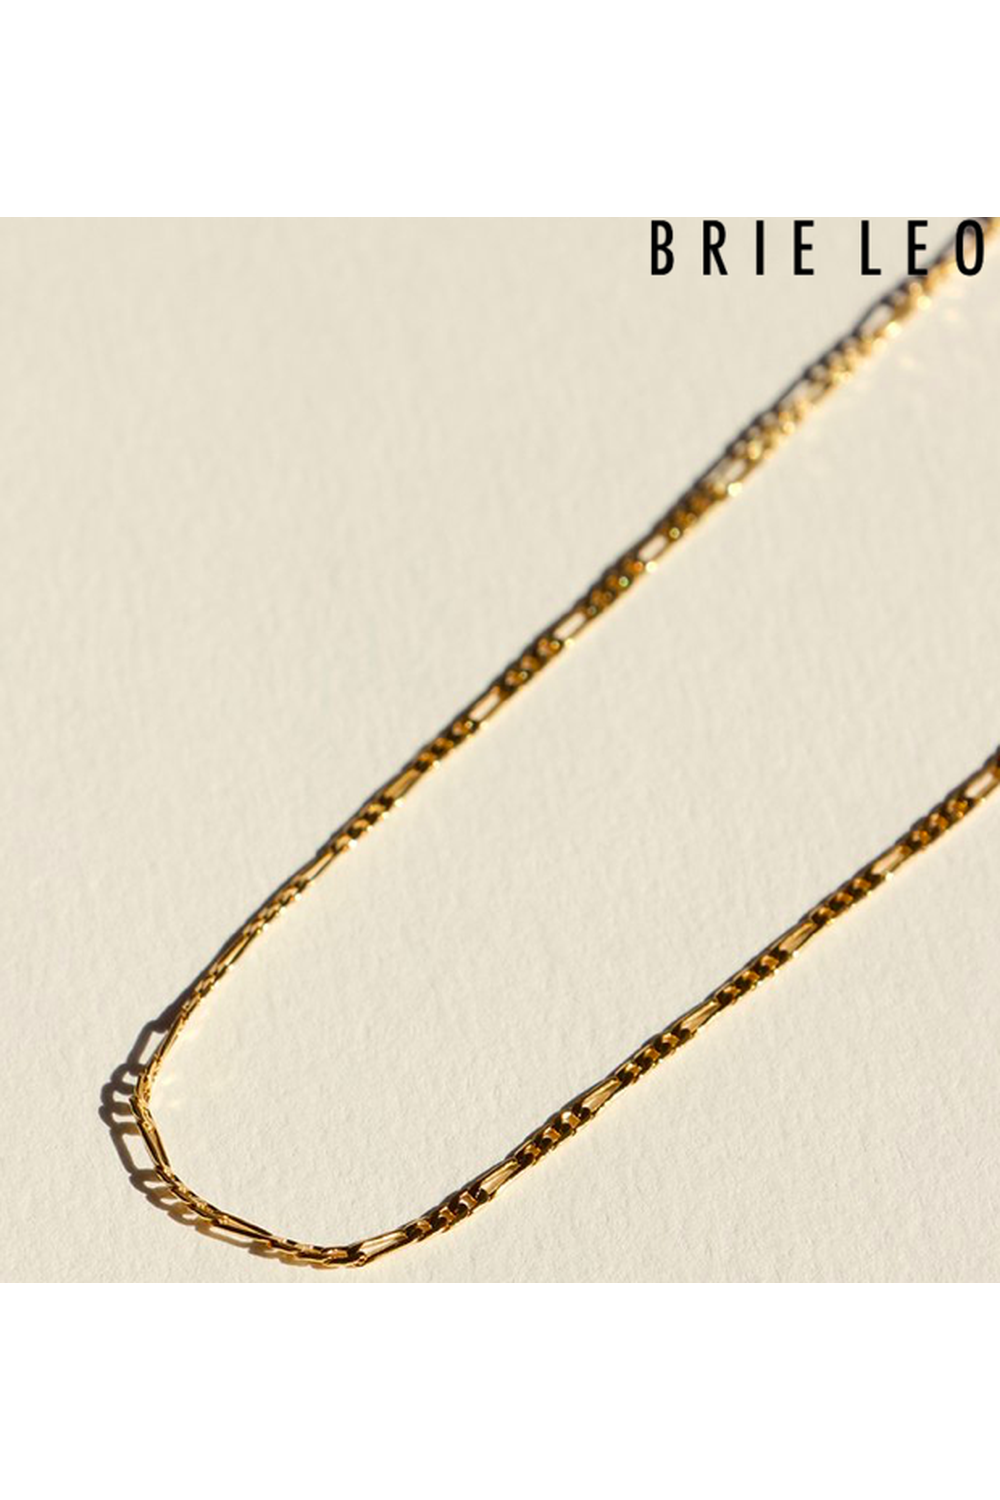 MINI ABUELO CHAIN NECKLACE | Brie Leon | Mad About The Boy